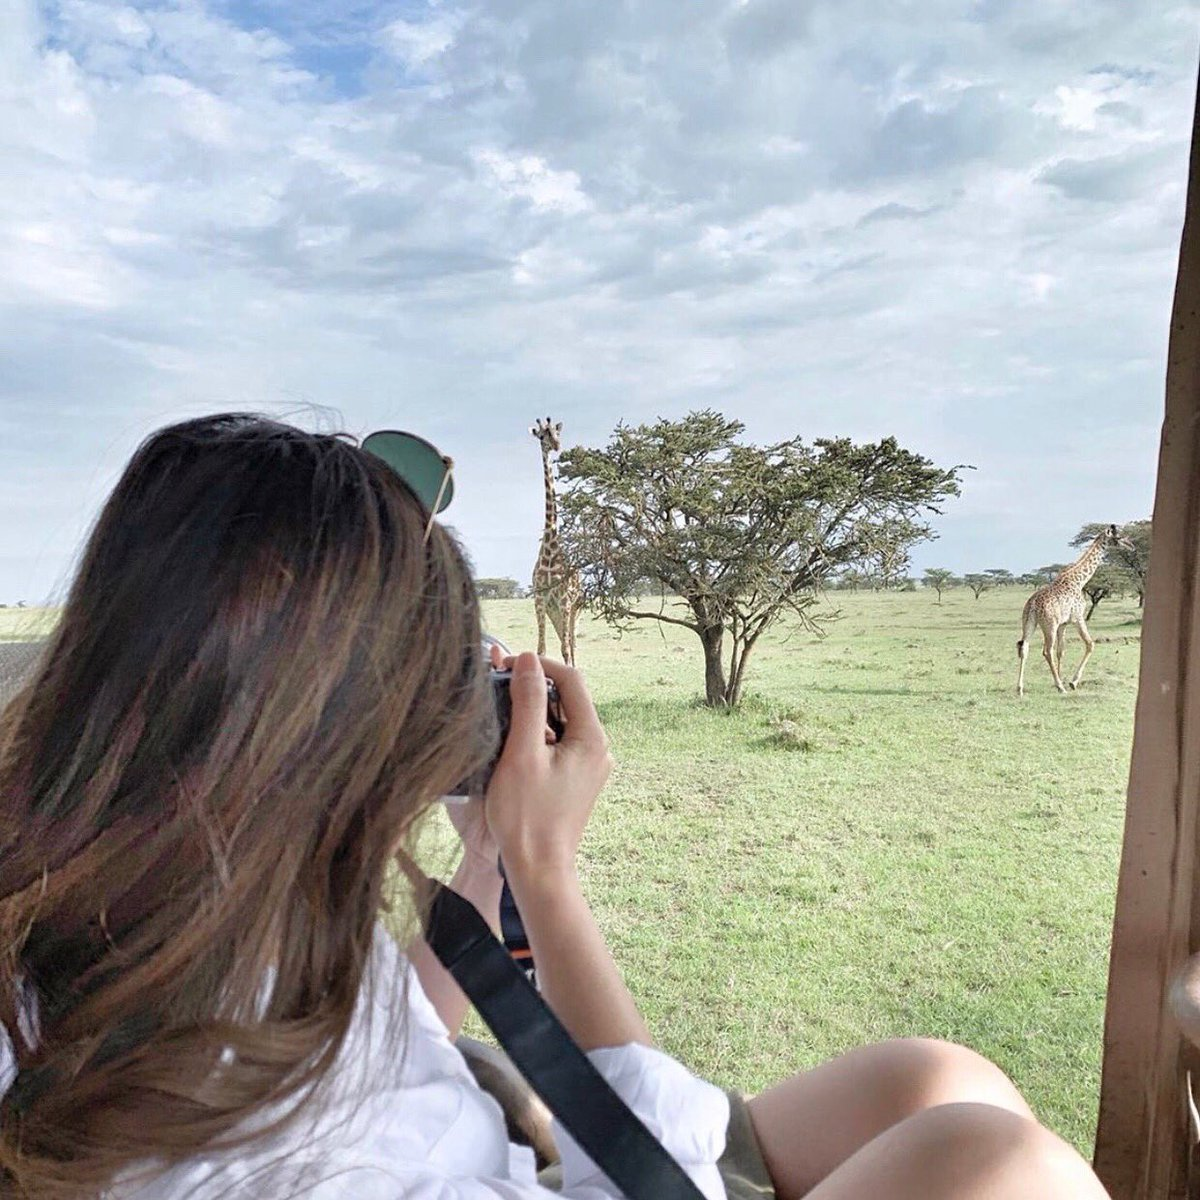 When life gets blurry, adjust your focus  The perfect #MondayMotovation and #VLEtravels inspo!  There's still time to share your epic travel pics with us to win a 3-night stay at #Ulusaba  Find out more:  http://www. virginlimitededition.com/en/VLEtravels     <br>http://pic.twitter.com/DEVJAGgbOa